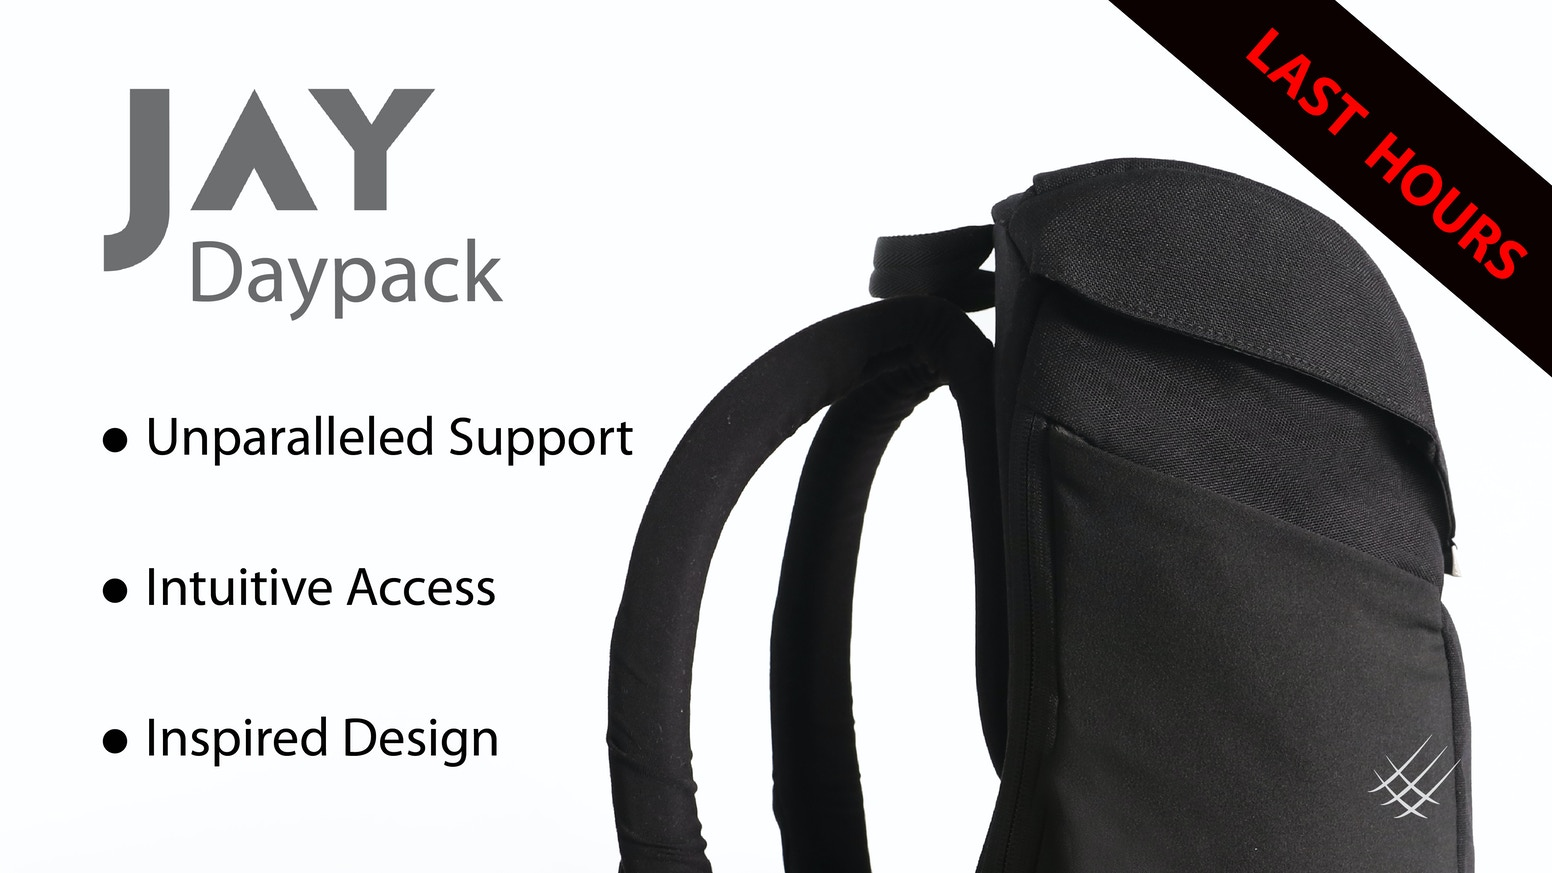 Incredible back support, instant access, and intuitive functionality, together with an inspired design. Explore the JAY daypack.